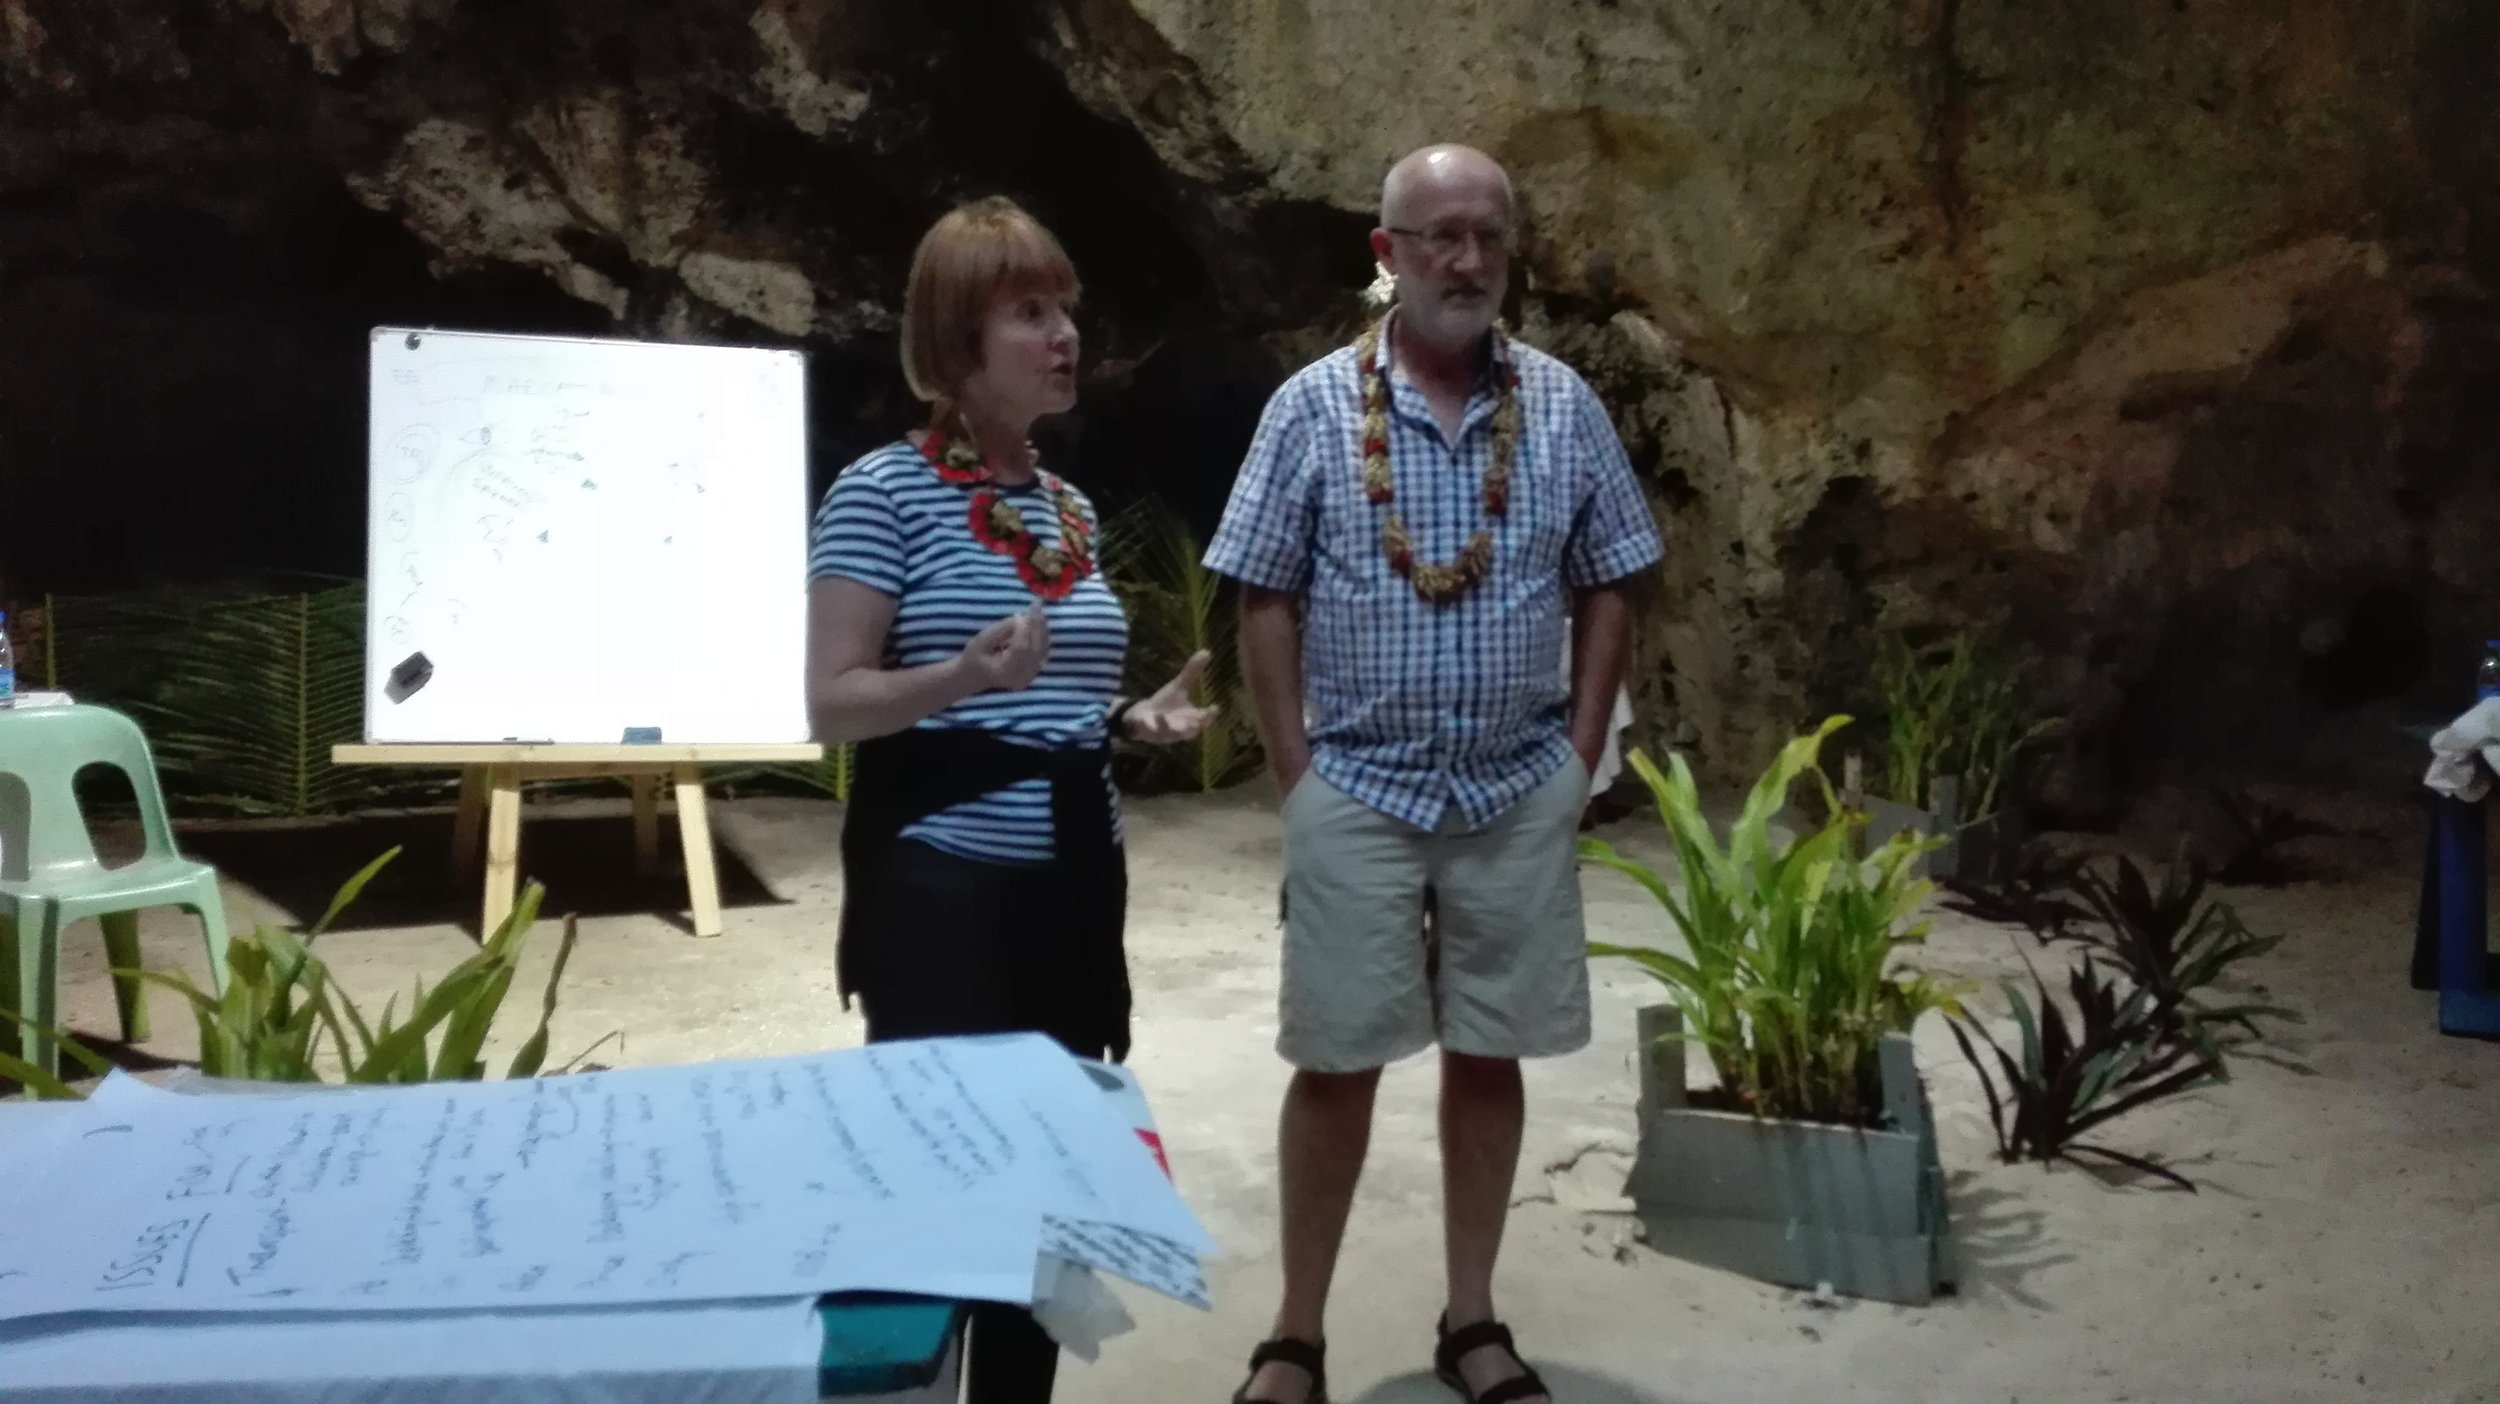 Mihaela Balan and Rob Duthie workshop in Tongan cave.